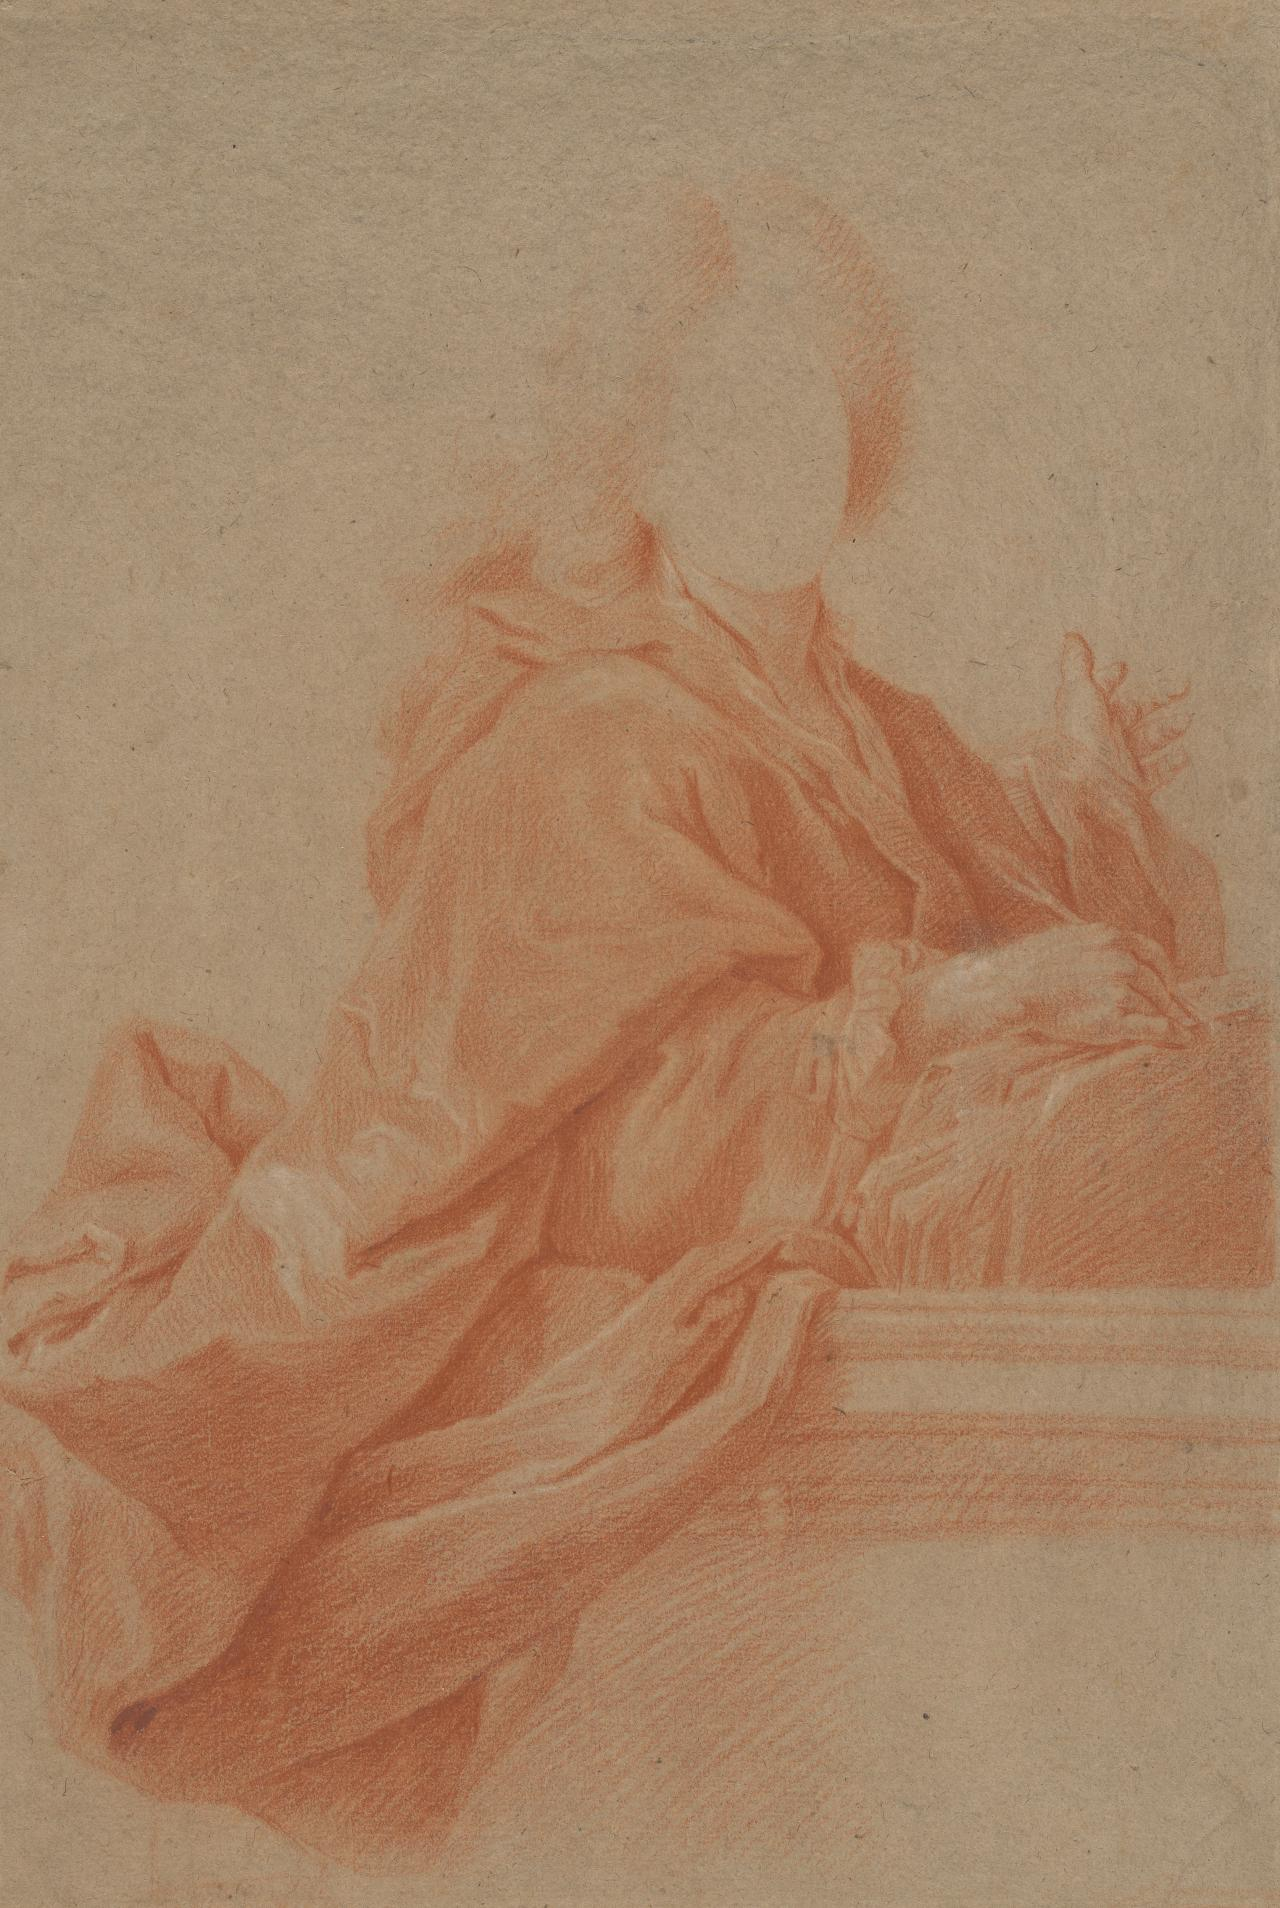 Study for the portrait of a man in academic robes